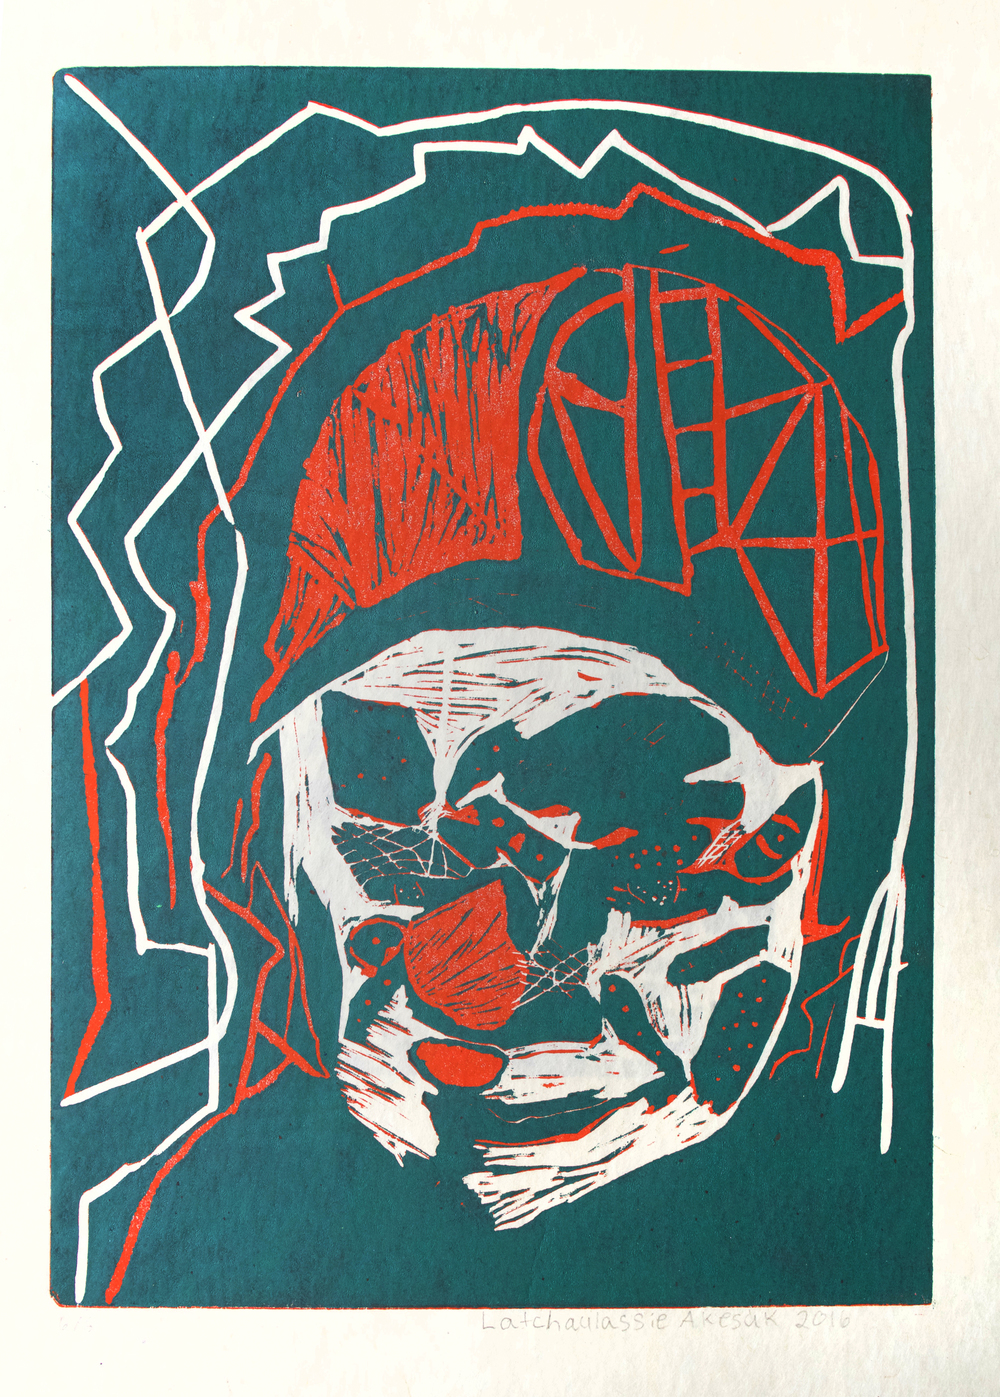 Uvanga: Self-Portrait   Latch Akesuk  Two-Layer Linocut Print on Washi  15.5 x 21.5""